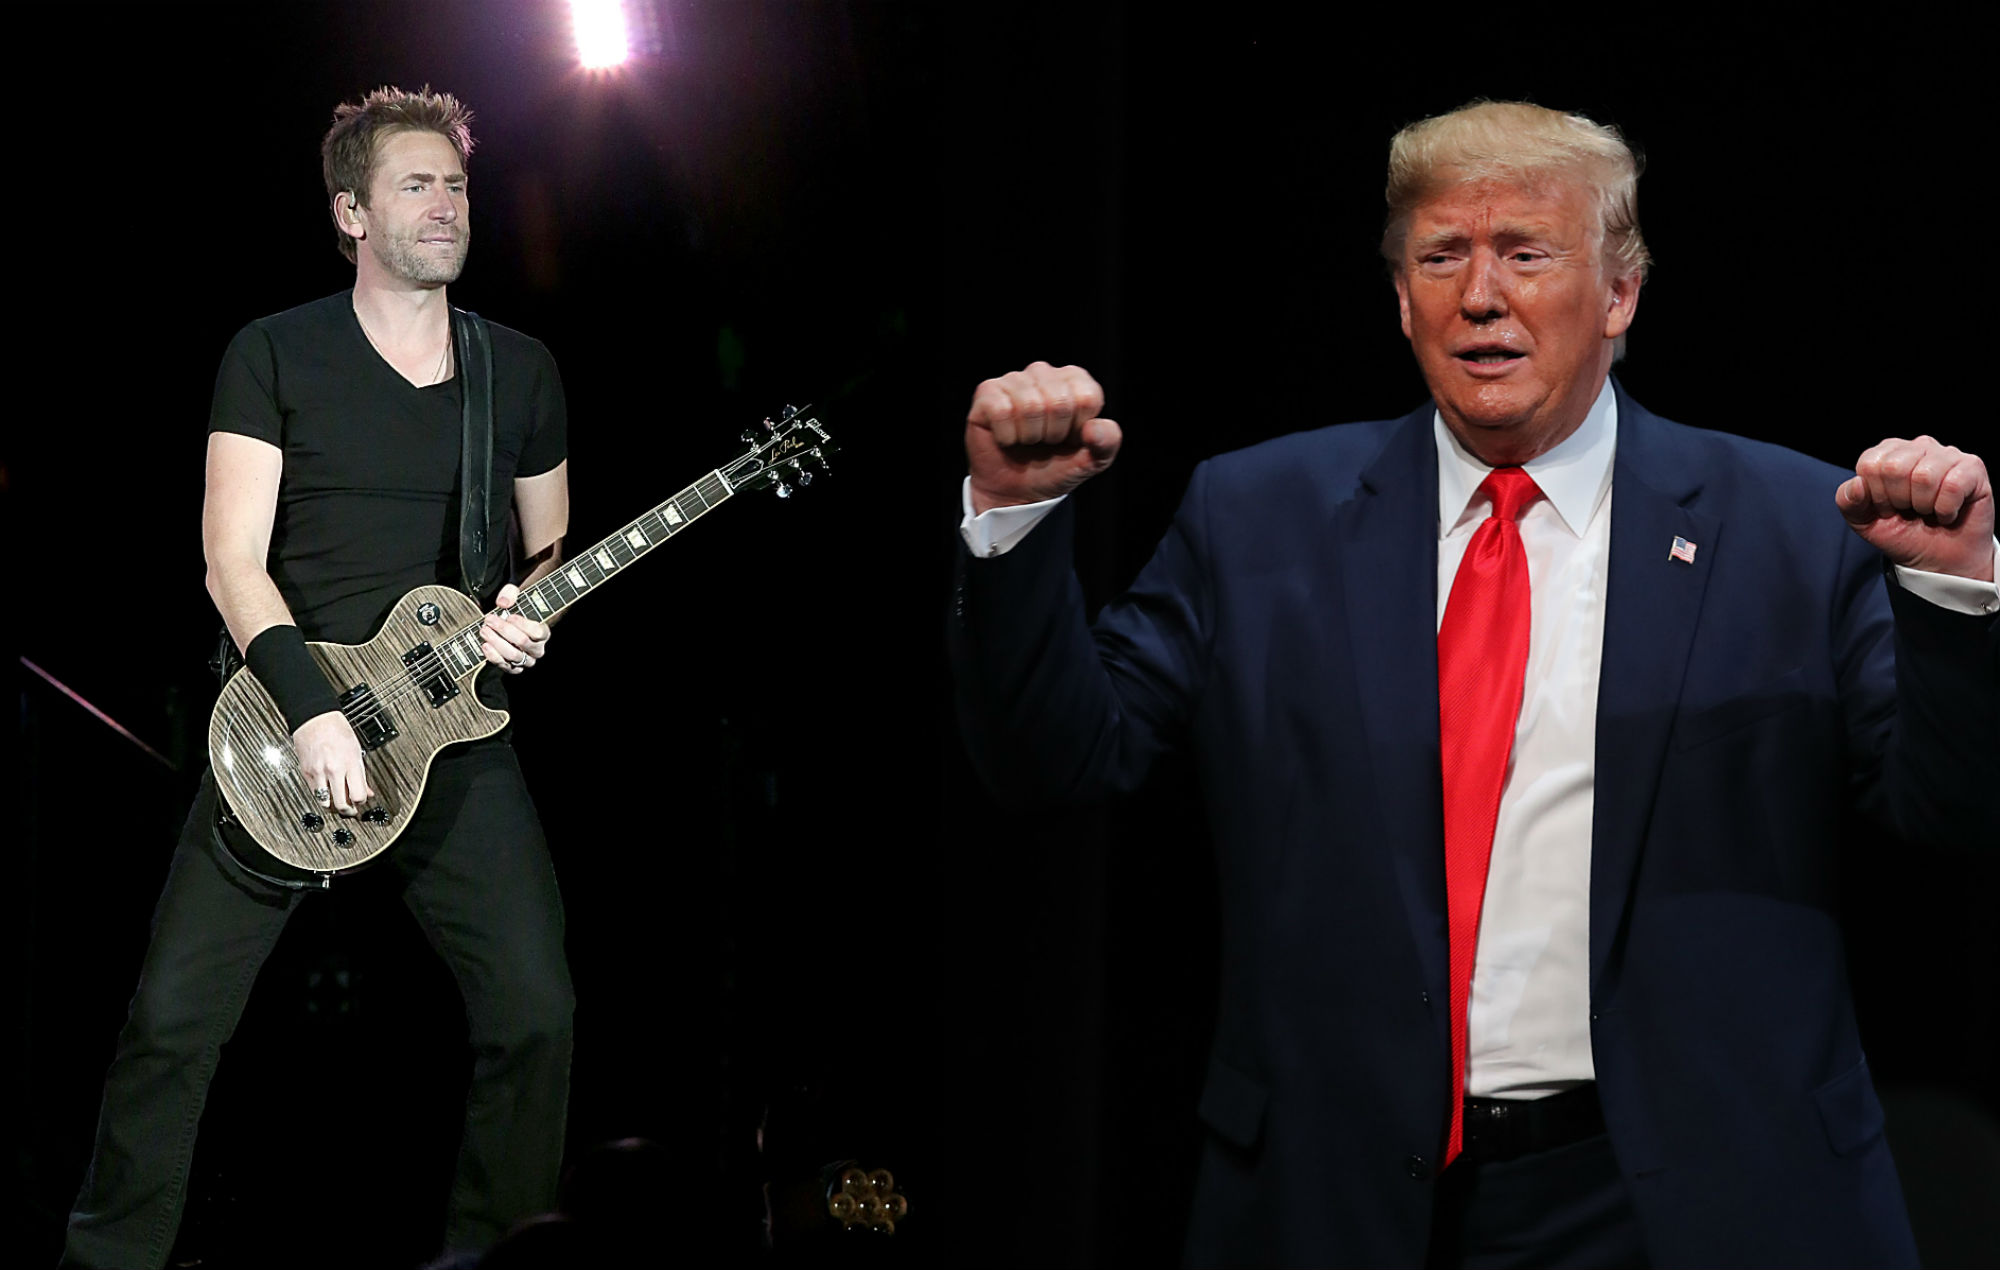 Nickelback see huge spike in 'Photograph' streams after Donald Trump tweet